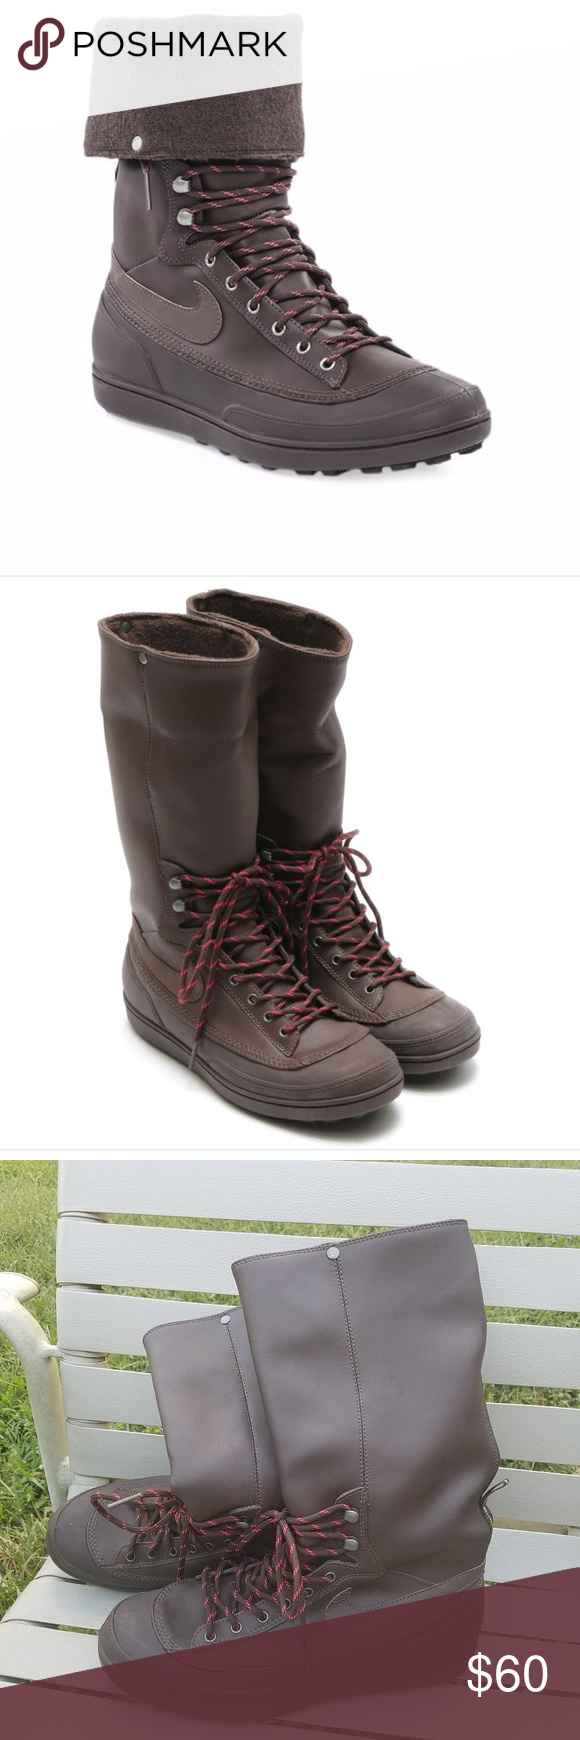 d93279c2a078 Nike Storm Warrior Boots size 7 These are nike storm warrior boots brown in  color size 7. Nike Shoes Winter   Rain Boots